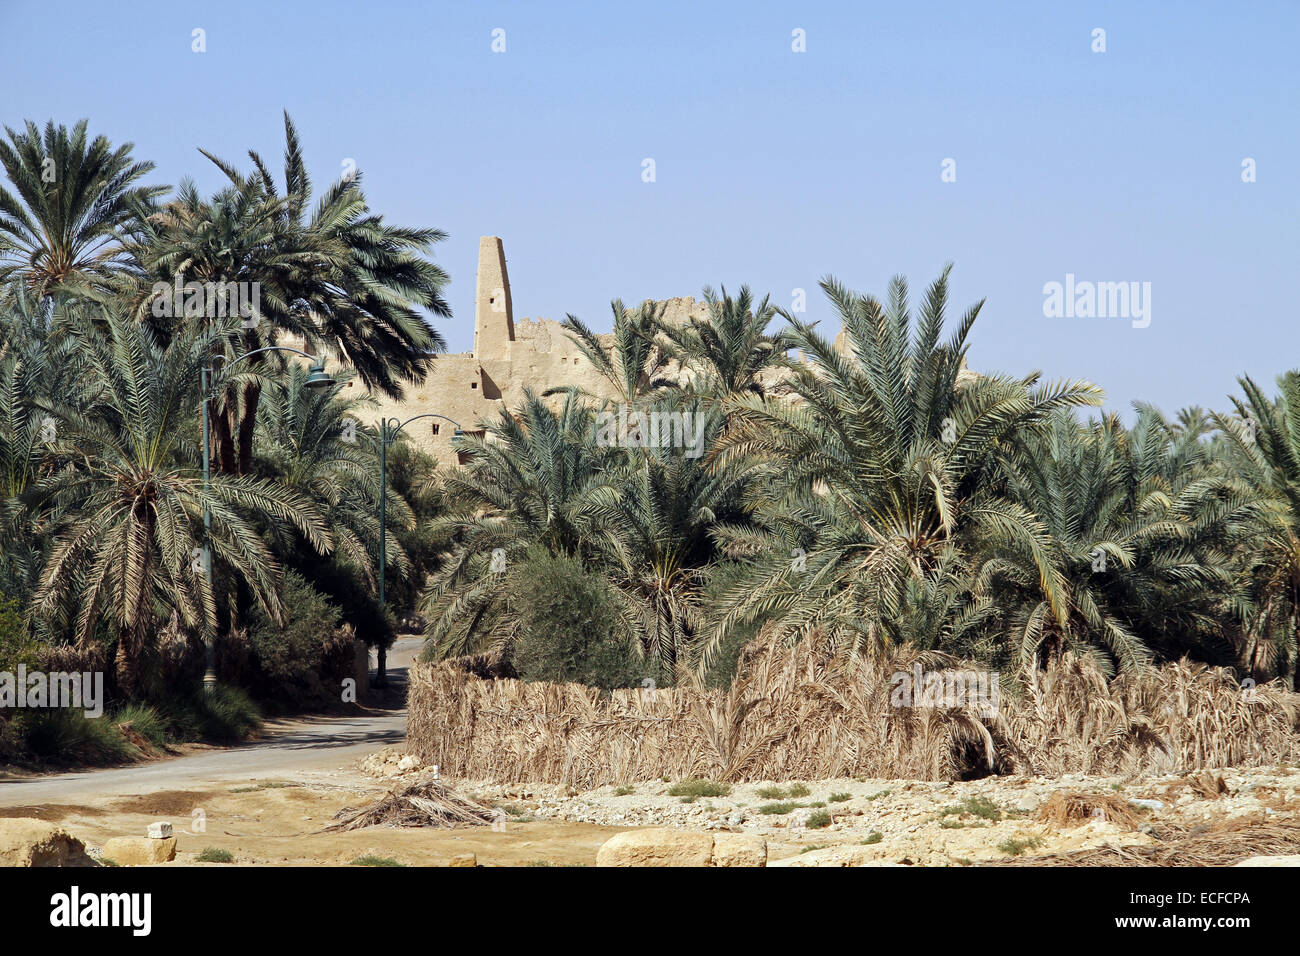 The Temple of the Oracle (also known as the Temple of Amun) rises over the palm trees in the village of Aghurmi Stock Photo